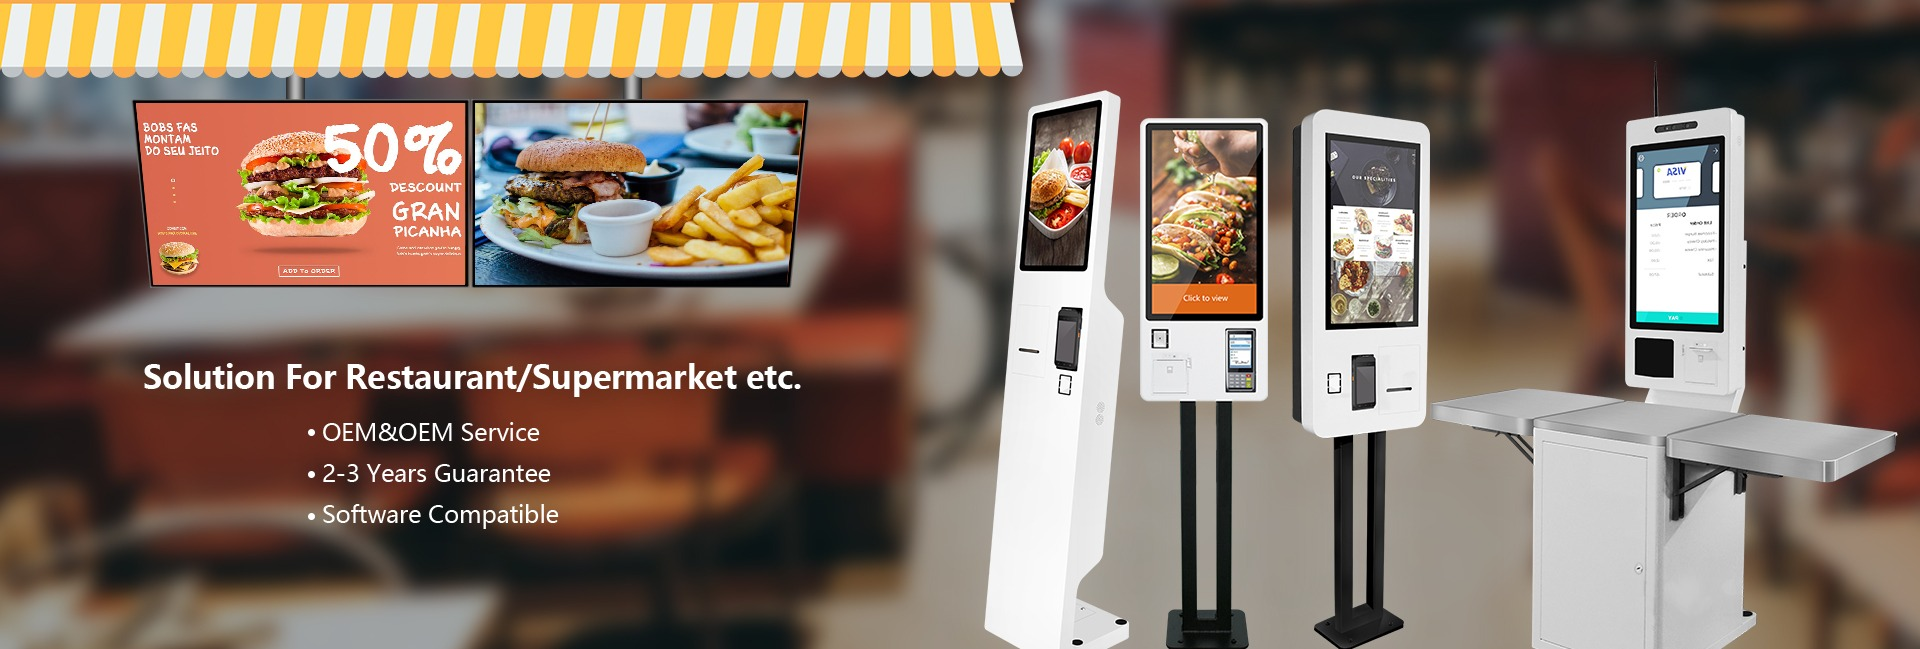 facebook food ordering system Digital Screens and self order kiosk